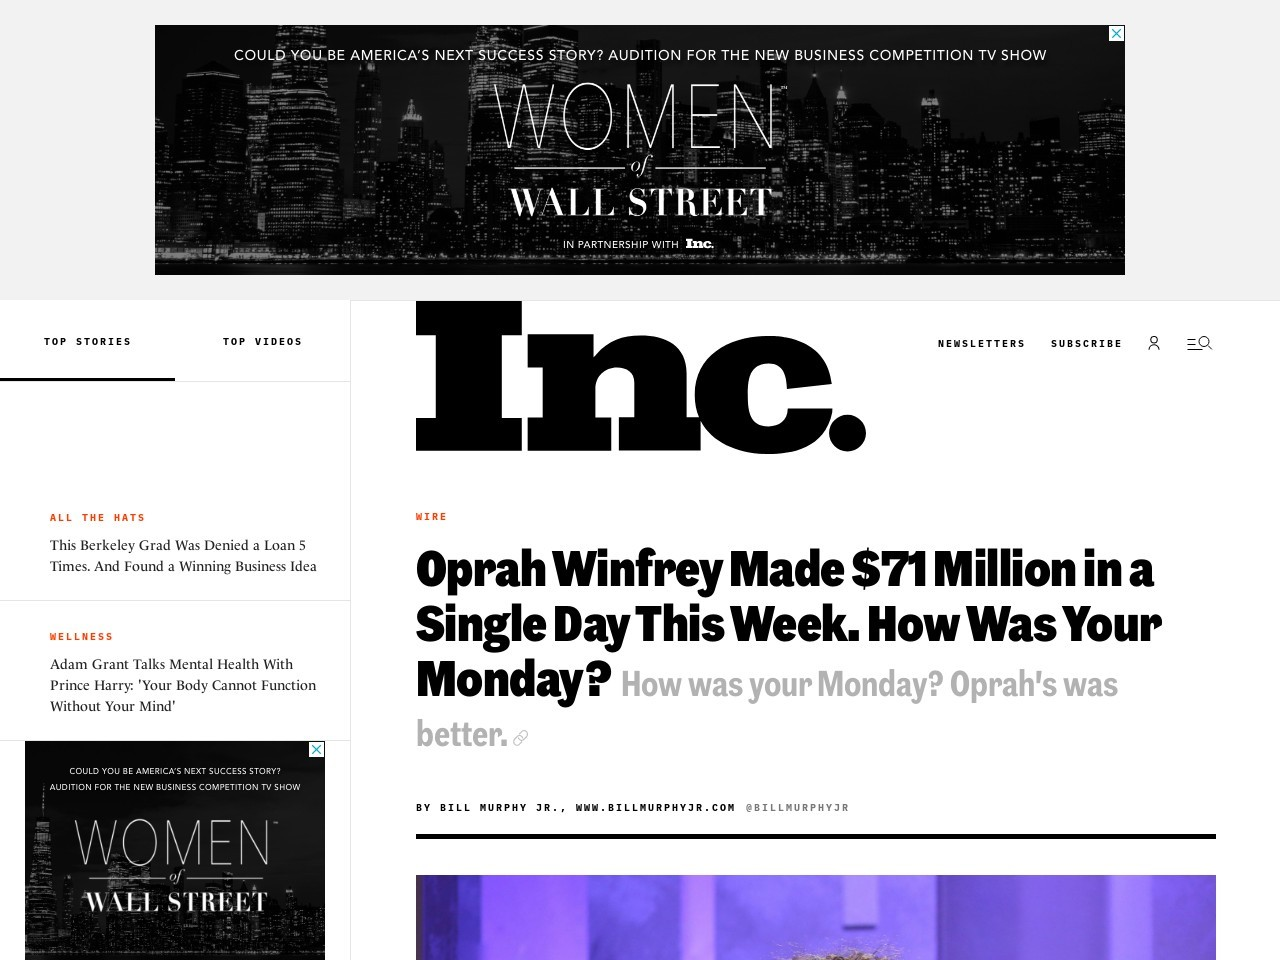 Oprah Winfrey Made $71 Million in a Single Day This Week (How Was Your Monday?)